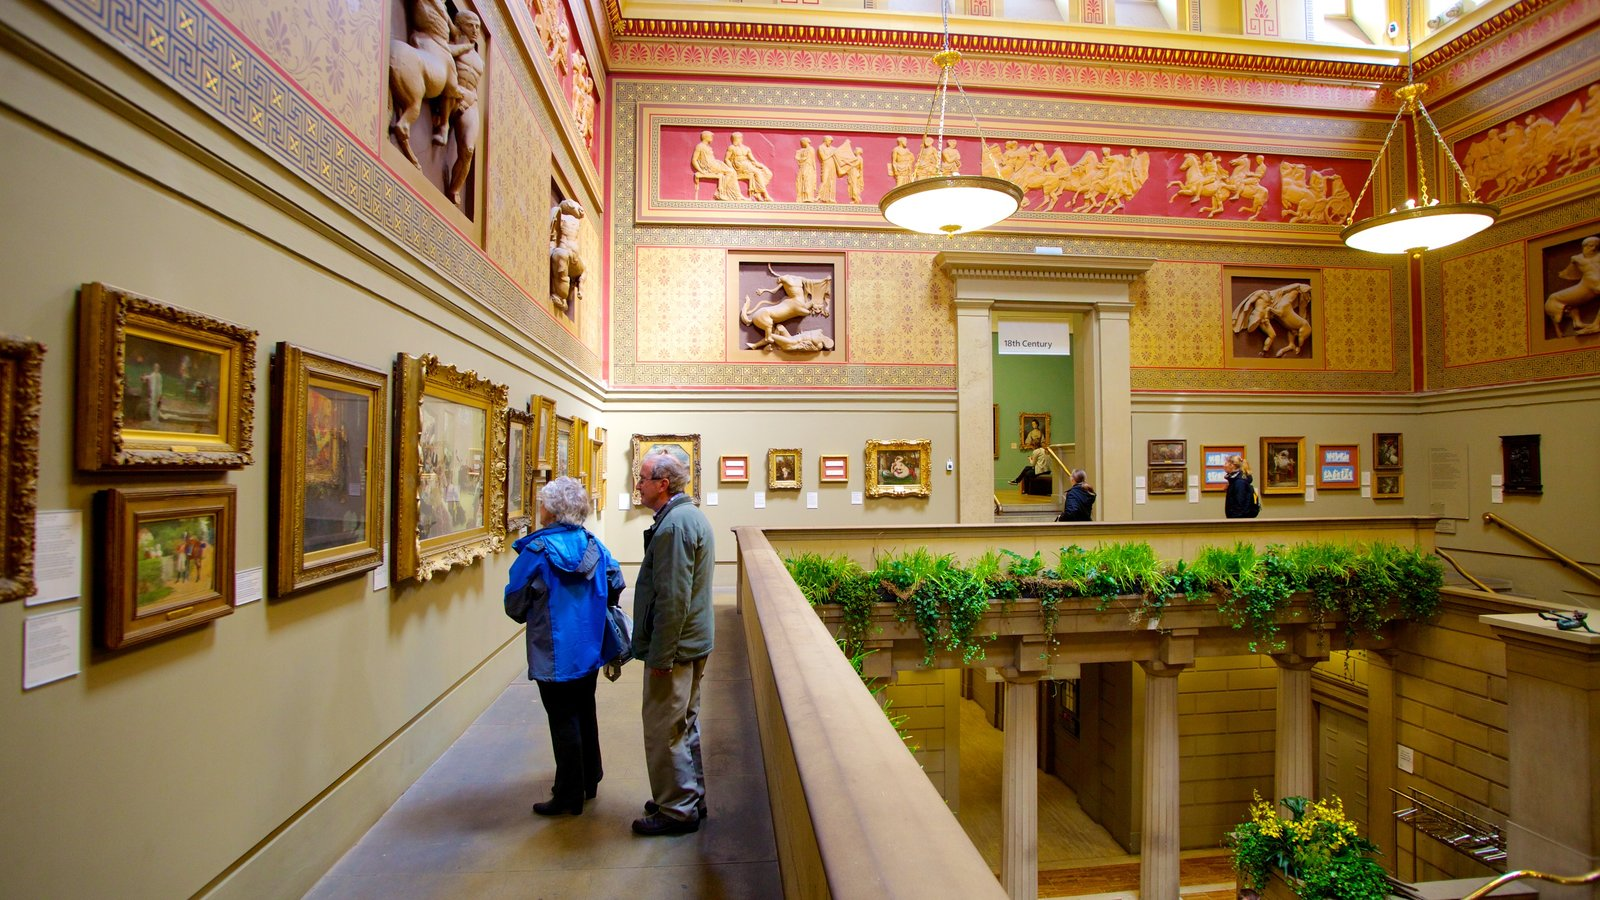 Manchester Art Gallery featuring art and interior views as well as a couple